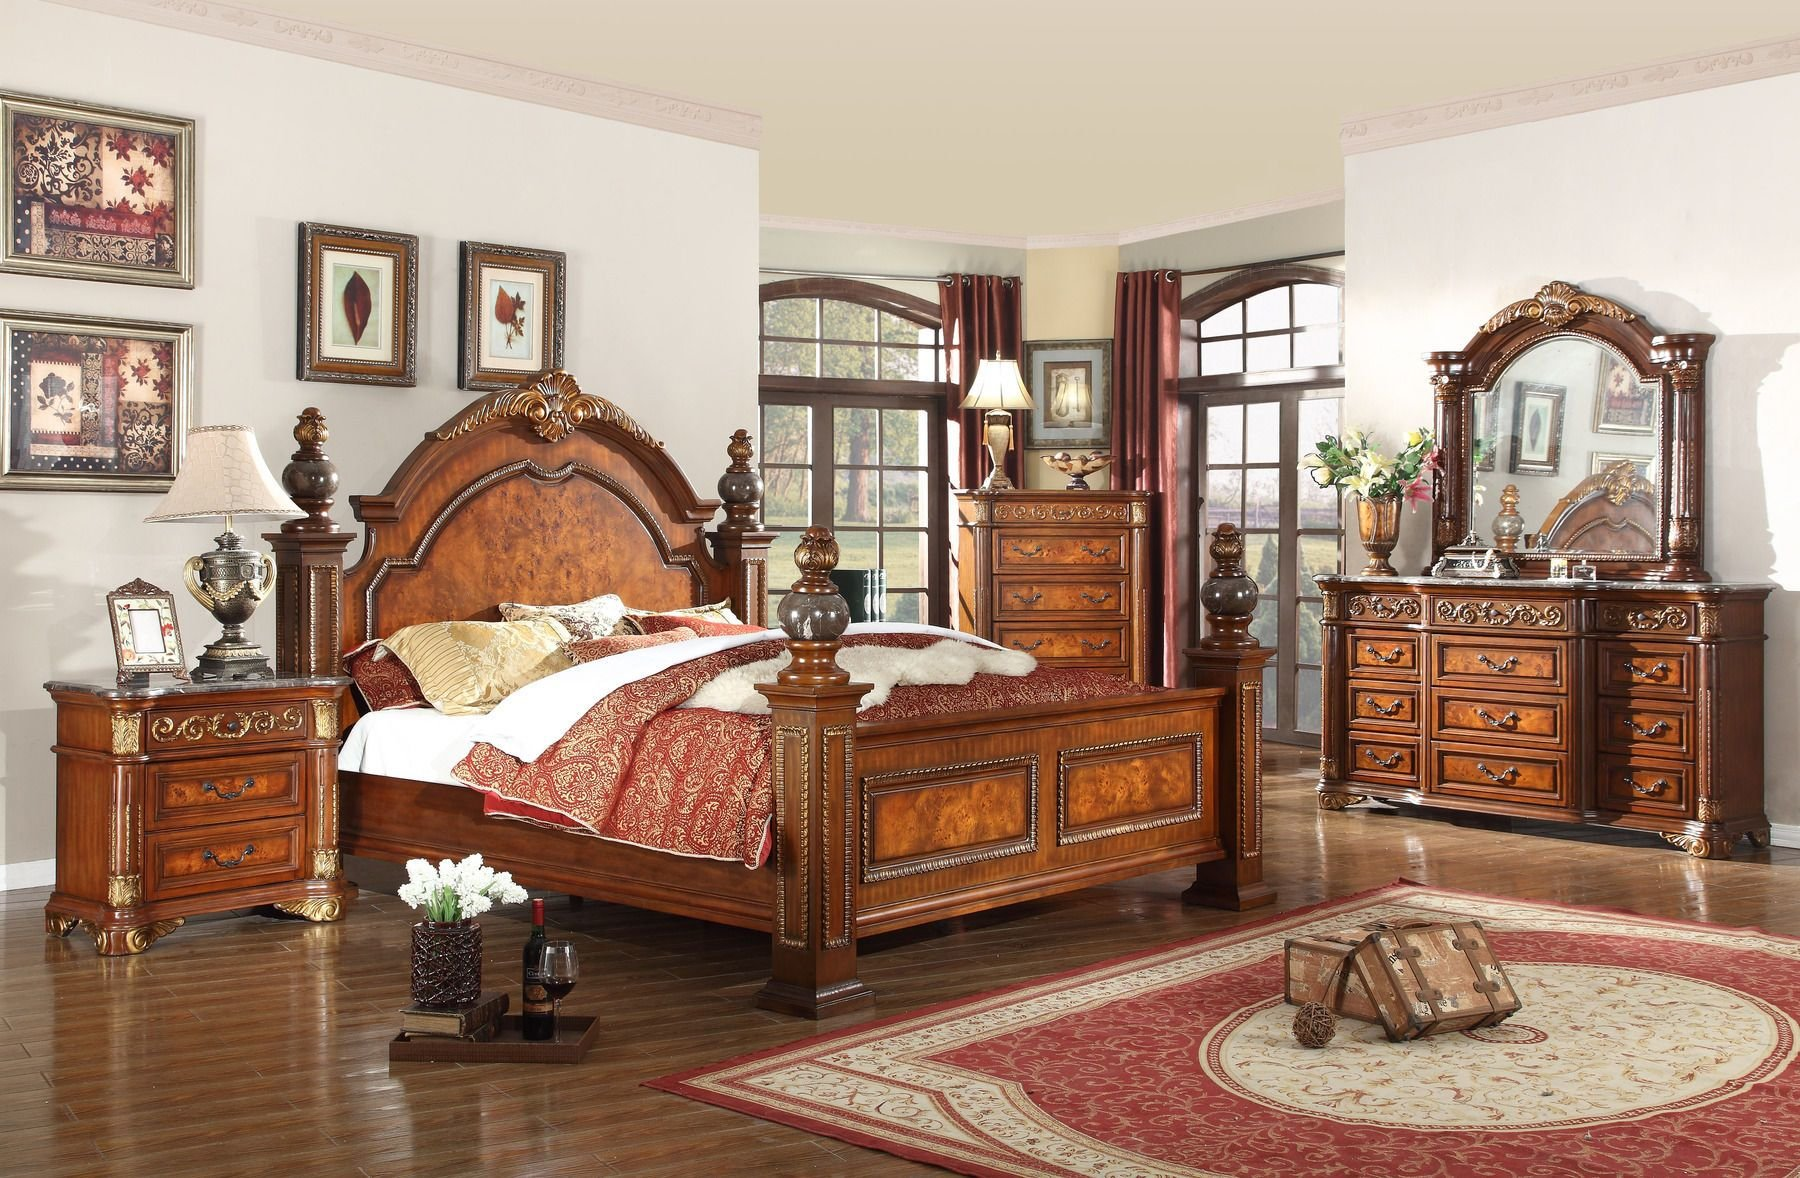 Best Royal Queen Size Bed Royal Meridian Furniture Modern Beds With Pictures